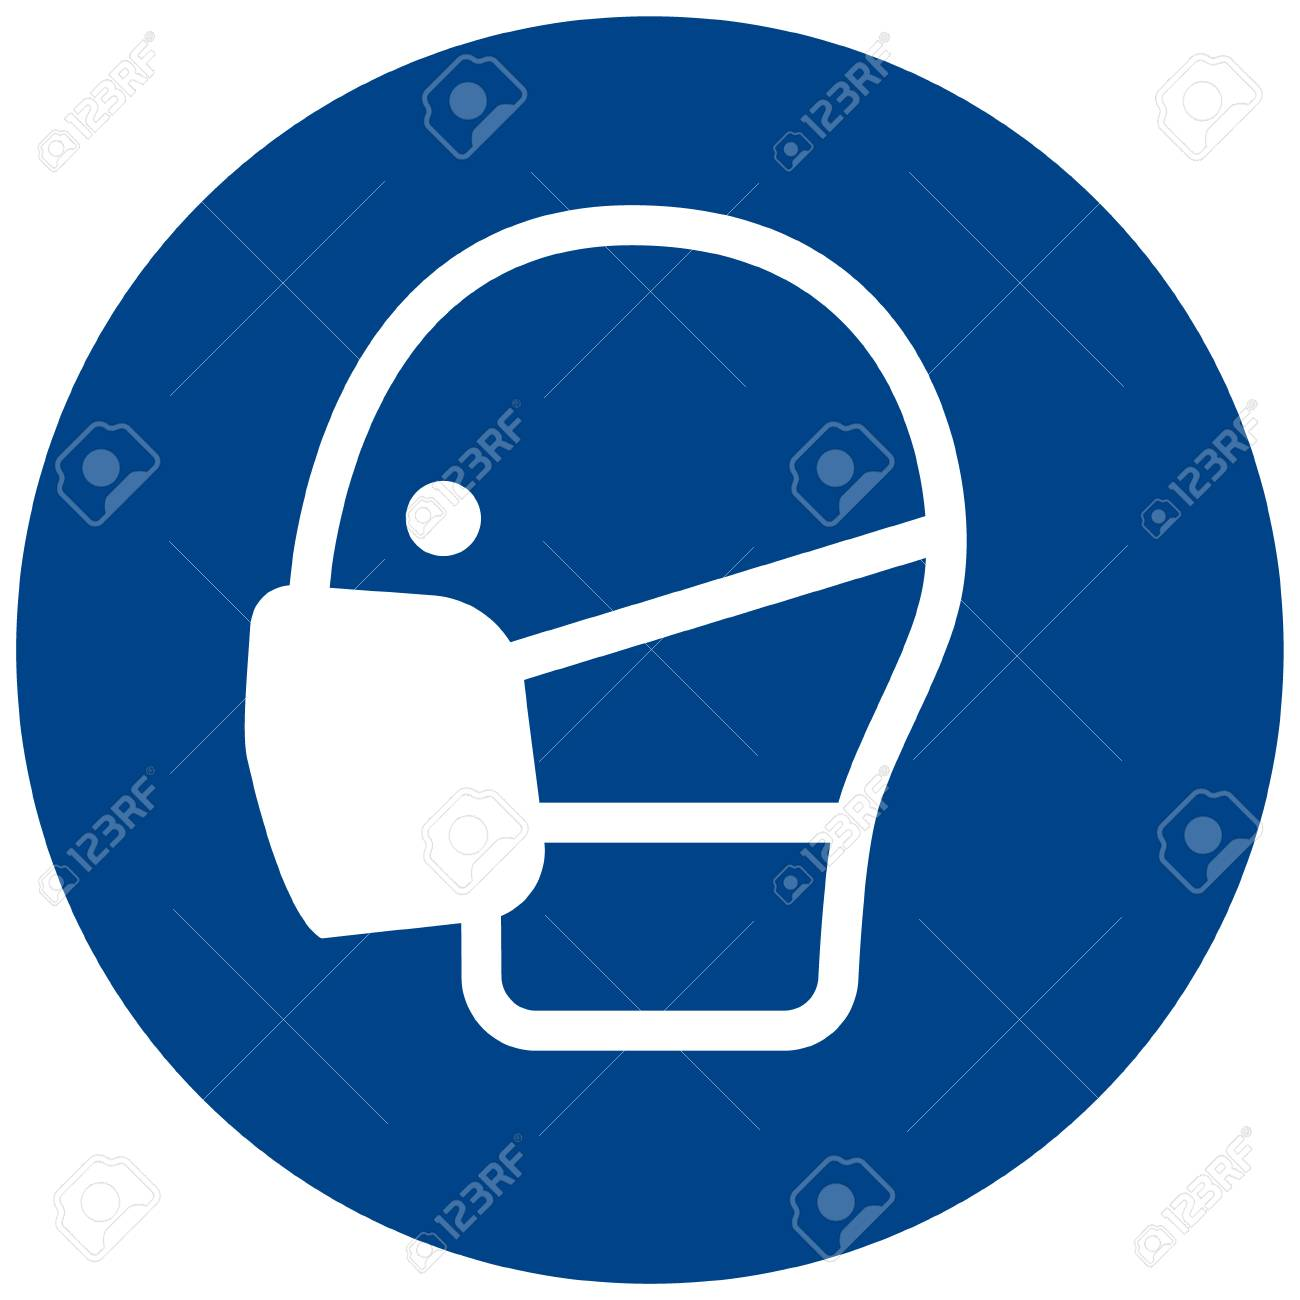 Mandatory sign vector Safety face mask must be worn, safety protection mask symbol, label, sticker - 97418050